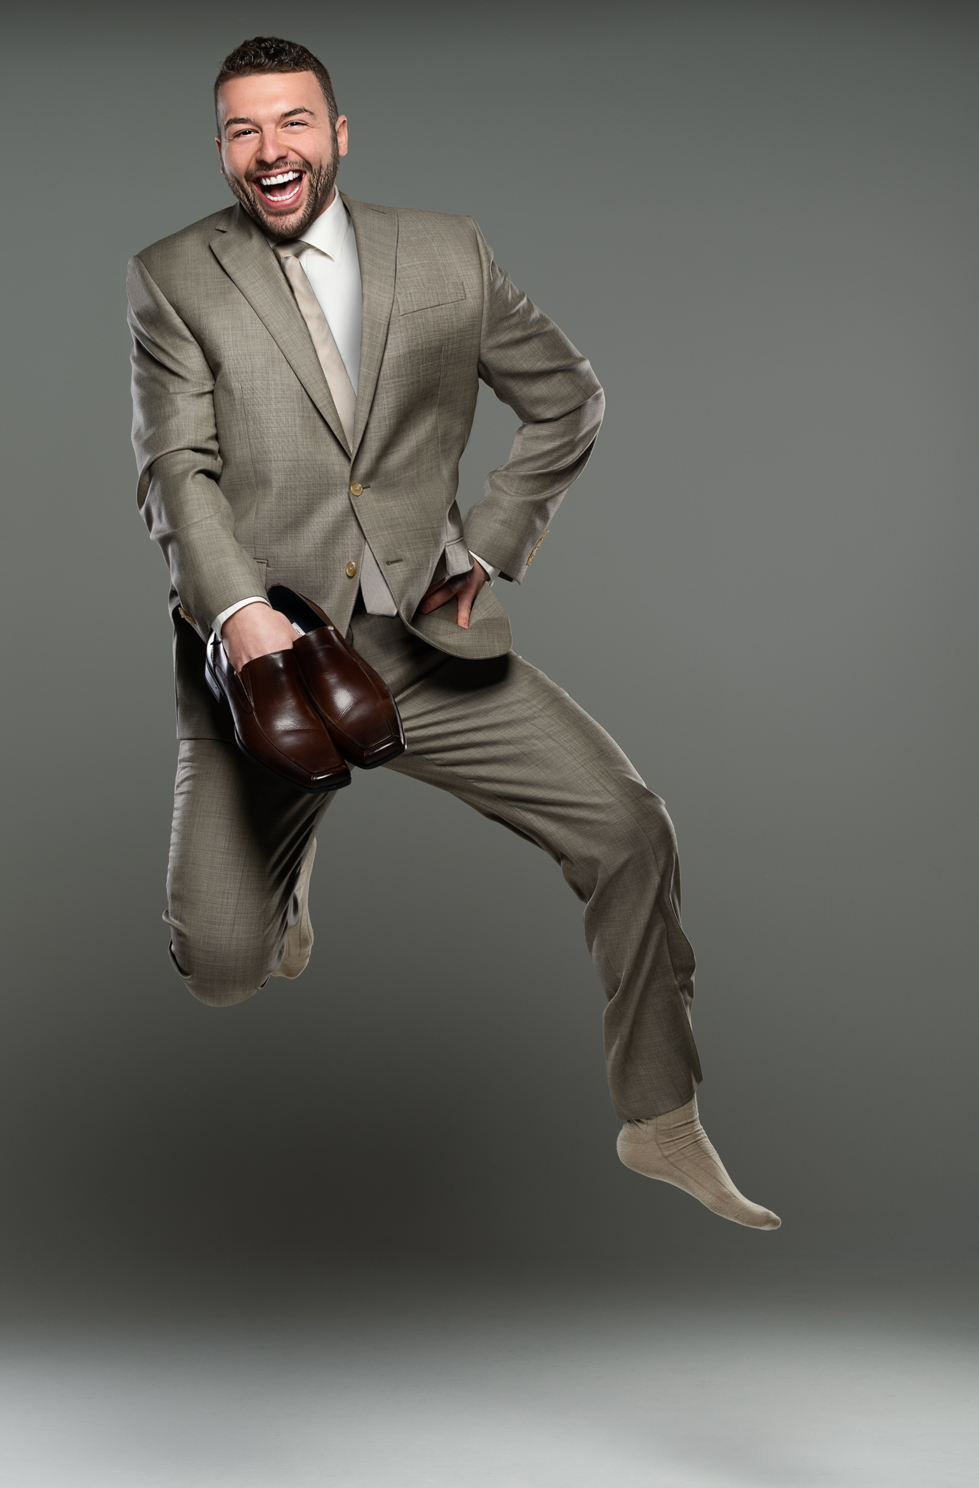 fashion photo of suits and shoes in a photography studio